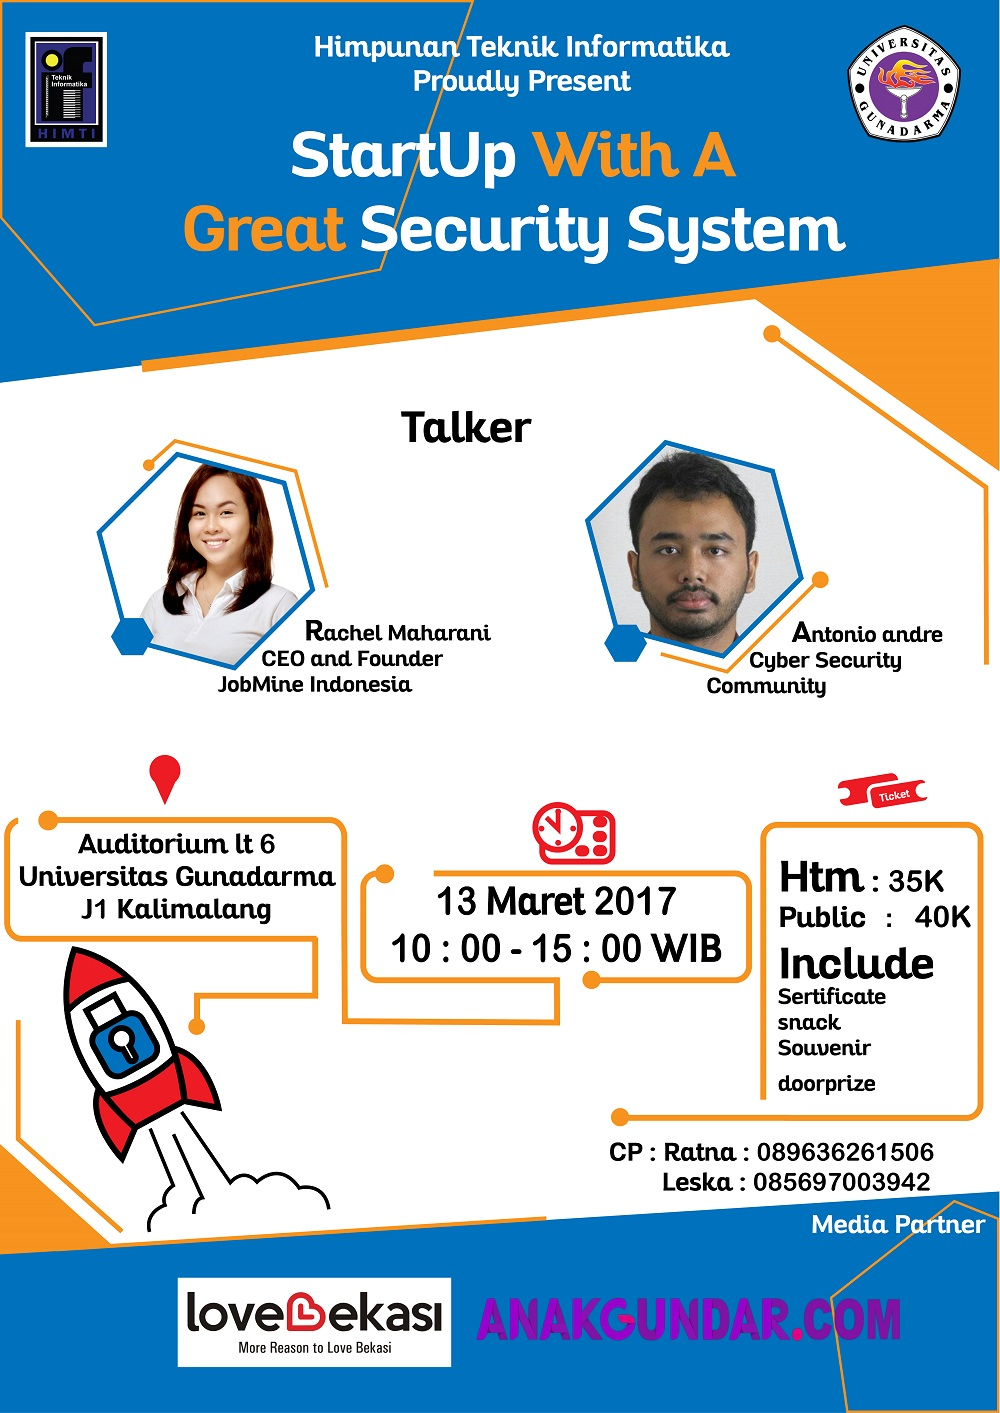 Startup With A Great Security System - Kampus J1 Universitas Gunadarma Bekasi, 13 Maret 2017